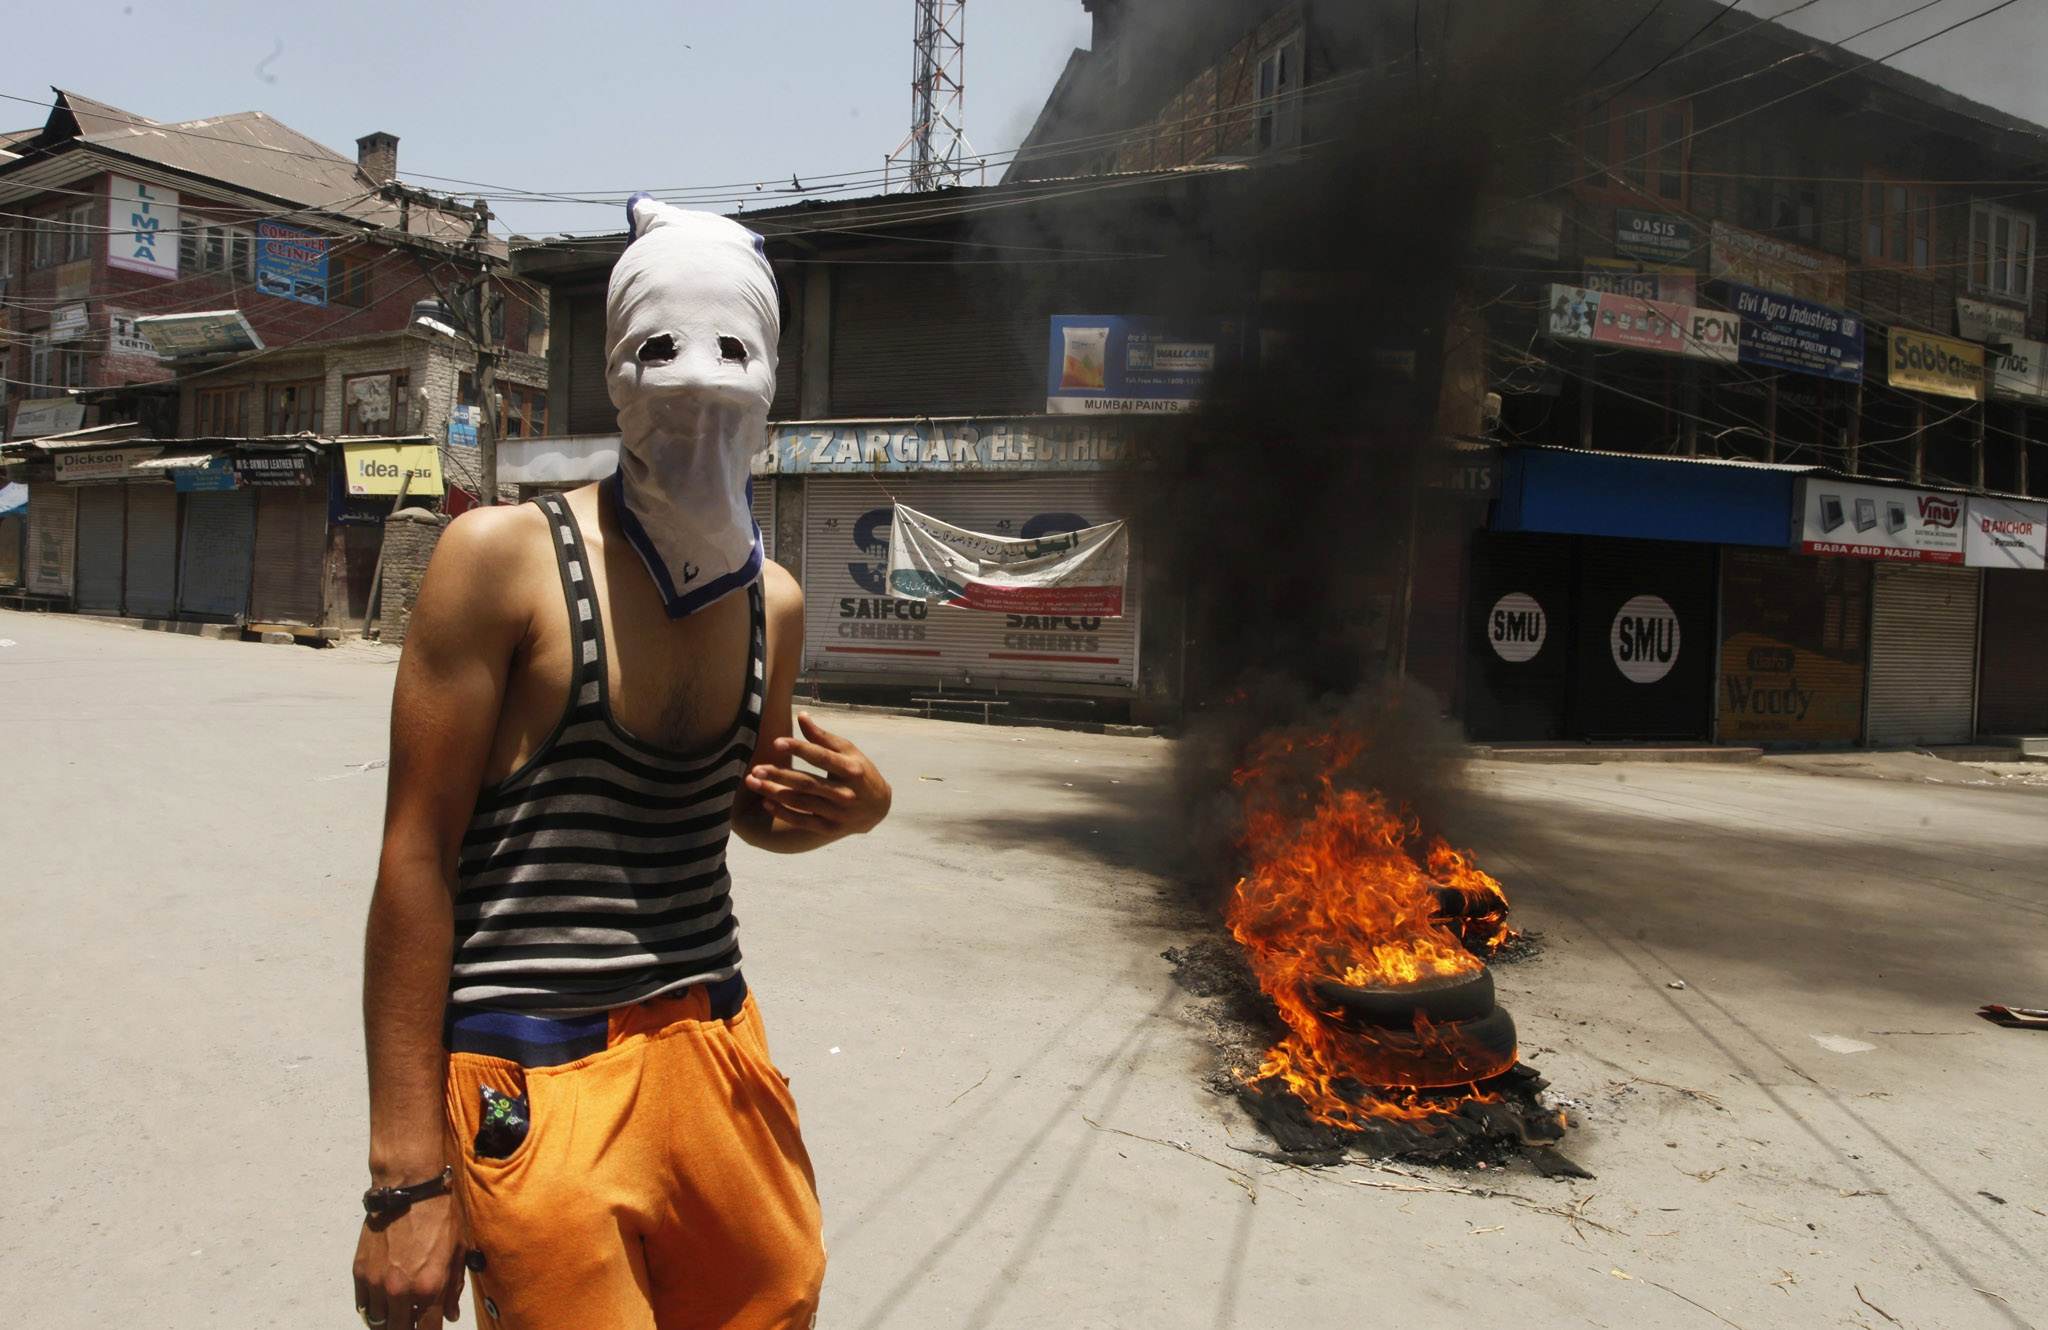 epa05389229 A masked Kashmiri Muslim stands near burning tires during a protest in Srinagar, the summer capital of Indian Kashmir, 25 June 2016. According to local news reports, clashes broke out between the Indian Police and protesters in Maisuma area of Srinagar when a protest march of separatists was not allowed to reach Lal Chowk, the city centre. The separatists had called for a protest in Lal Chowk against what they call conspiracies to change the demography of the Muslim-majority Jammu Kashmir by setting up Sainik colonies (Colonies for retired Indian Army men) and separate township for displaced Kashmiri Pandits (Hindus).  EPA/EPA